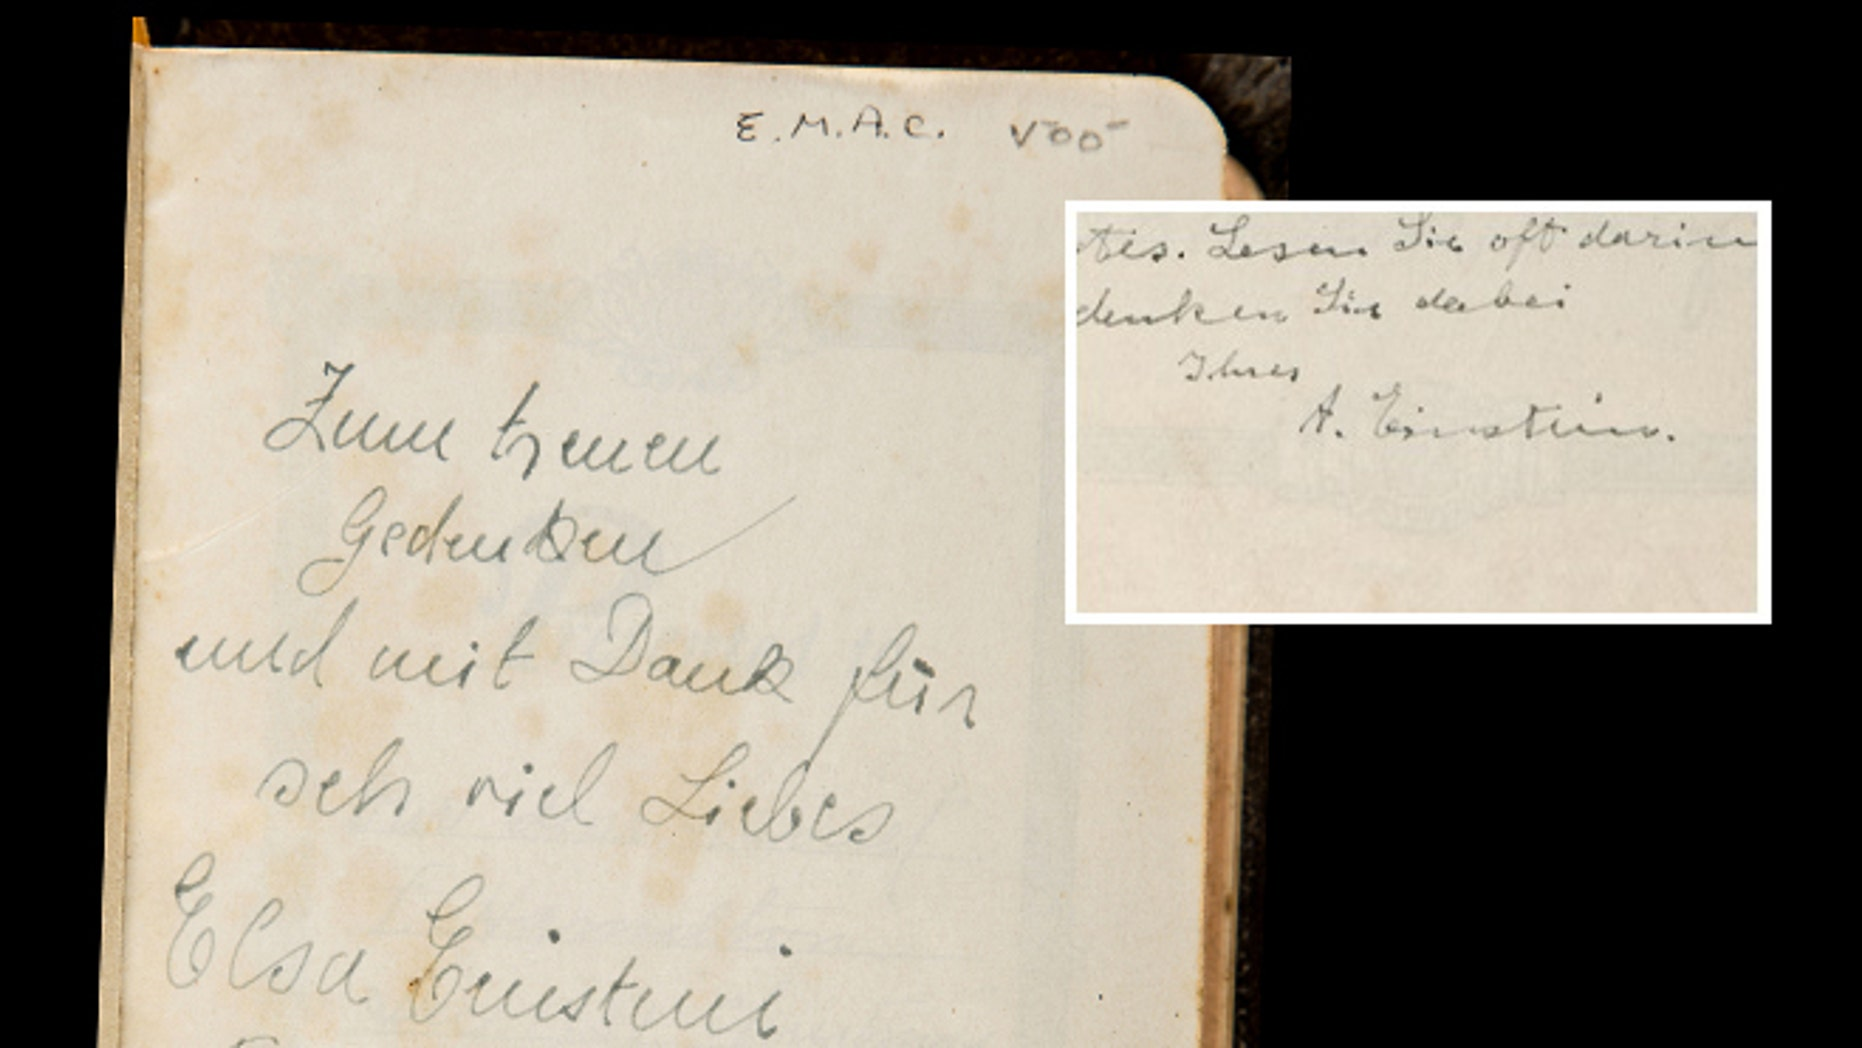 A Bible with an inscription from Albert Einstein was sold at auction by Bonhams in New York City for $68,500. The Bible's final price far exceeds its pre-sale estimate of between $1,500 and $2,500.